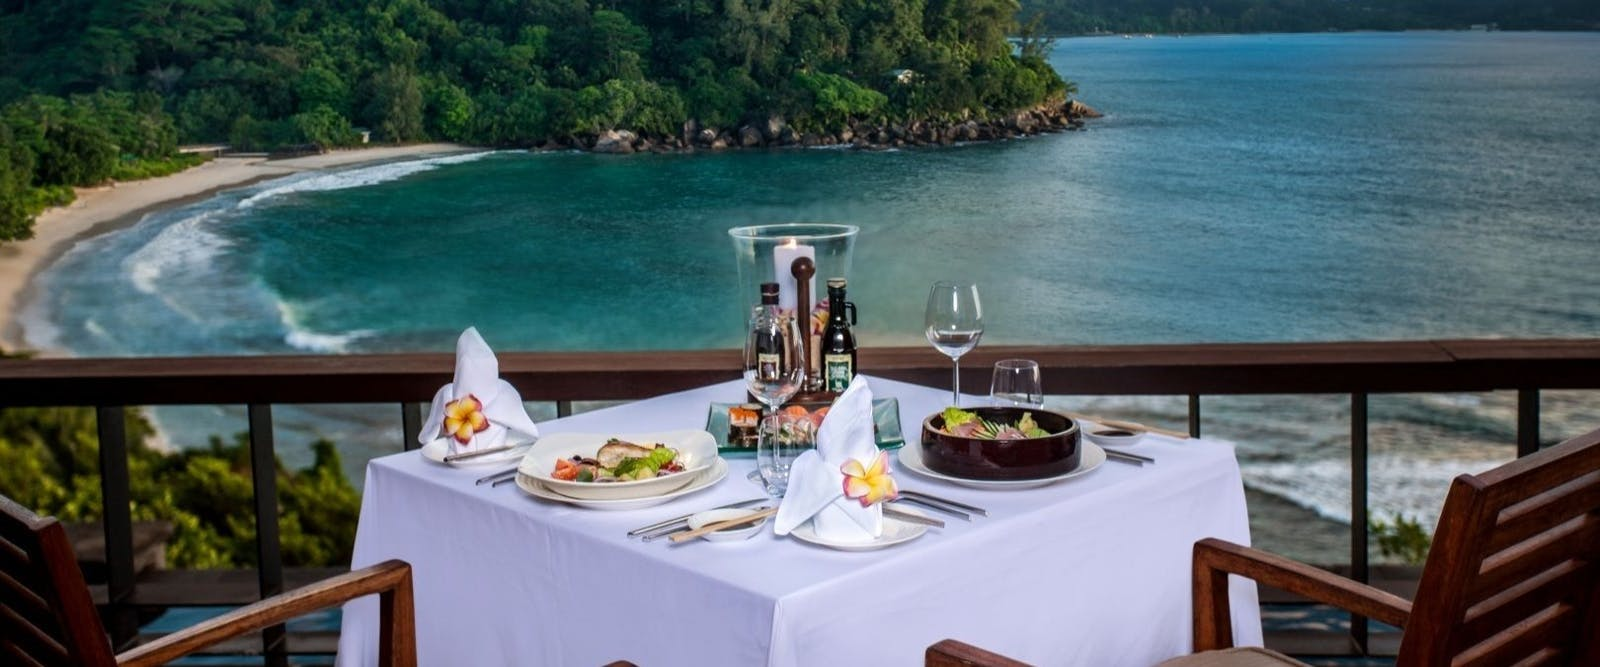 Unique Dining Experience at Maia Luxury Resort & Spa, Seychelles